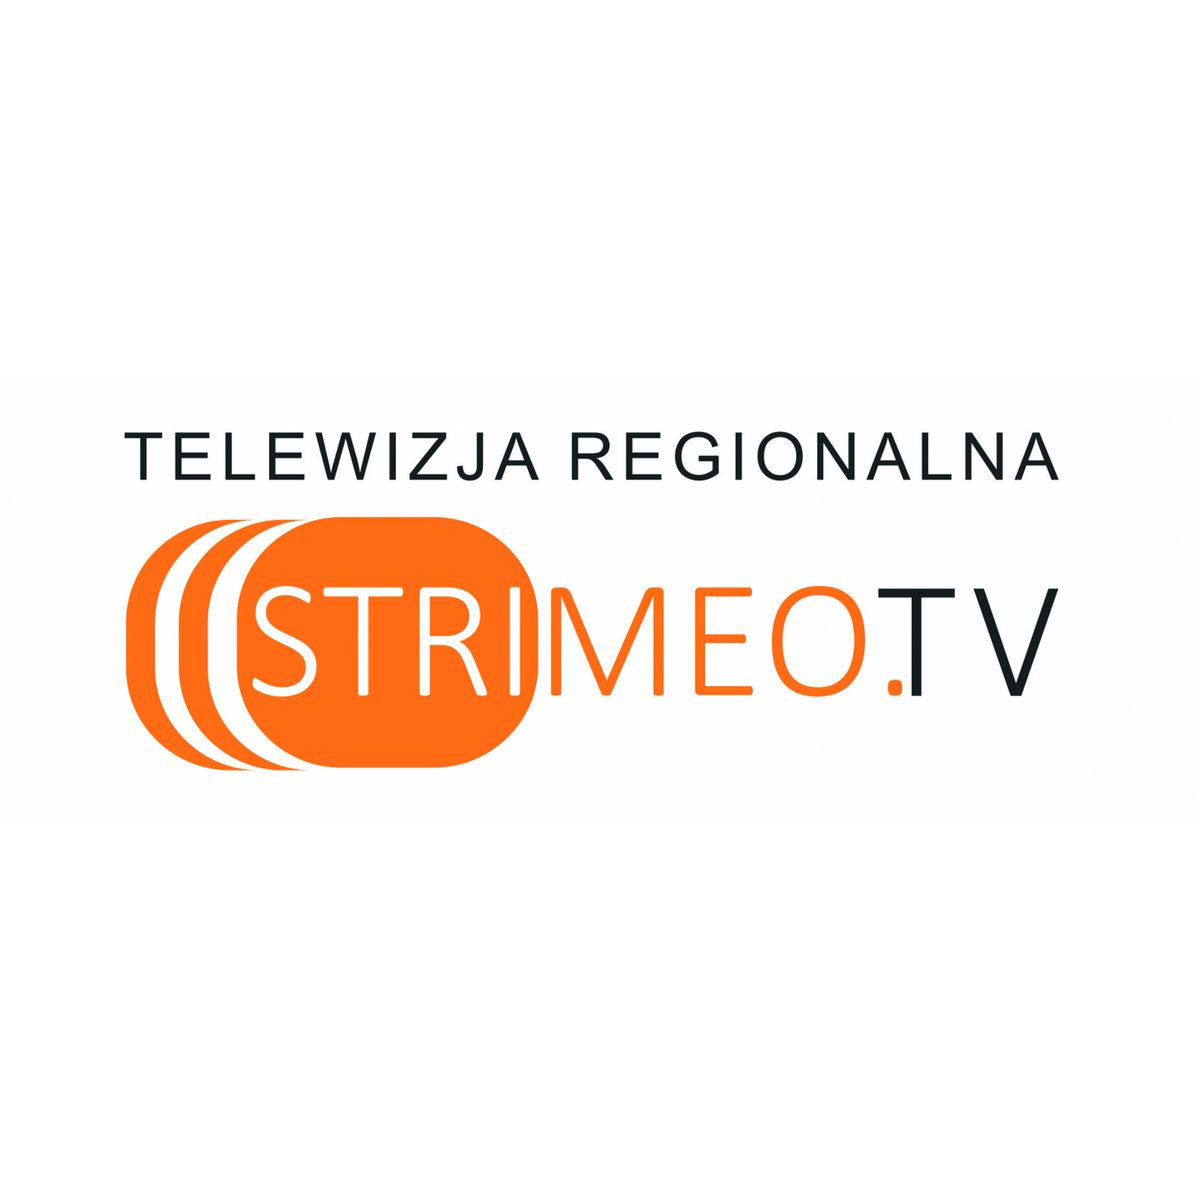 Strimeo TV